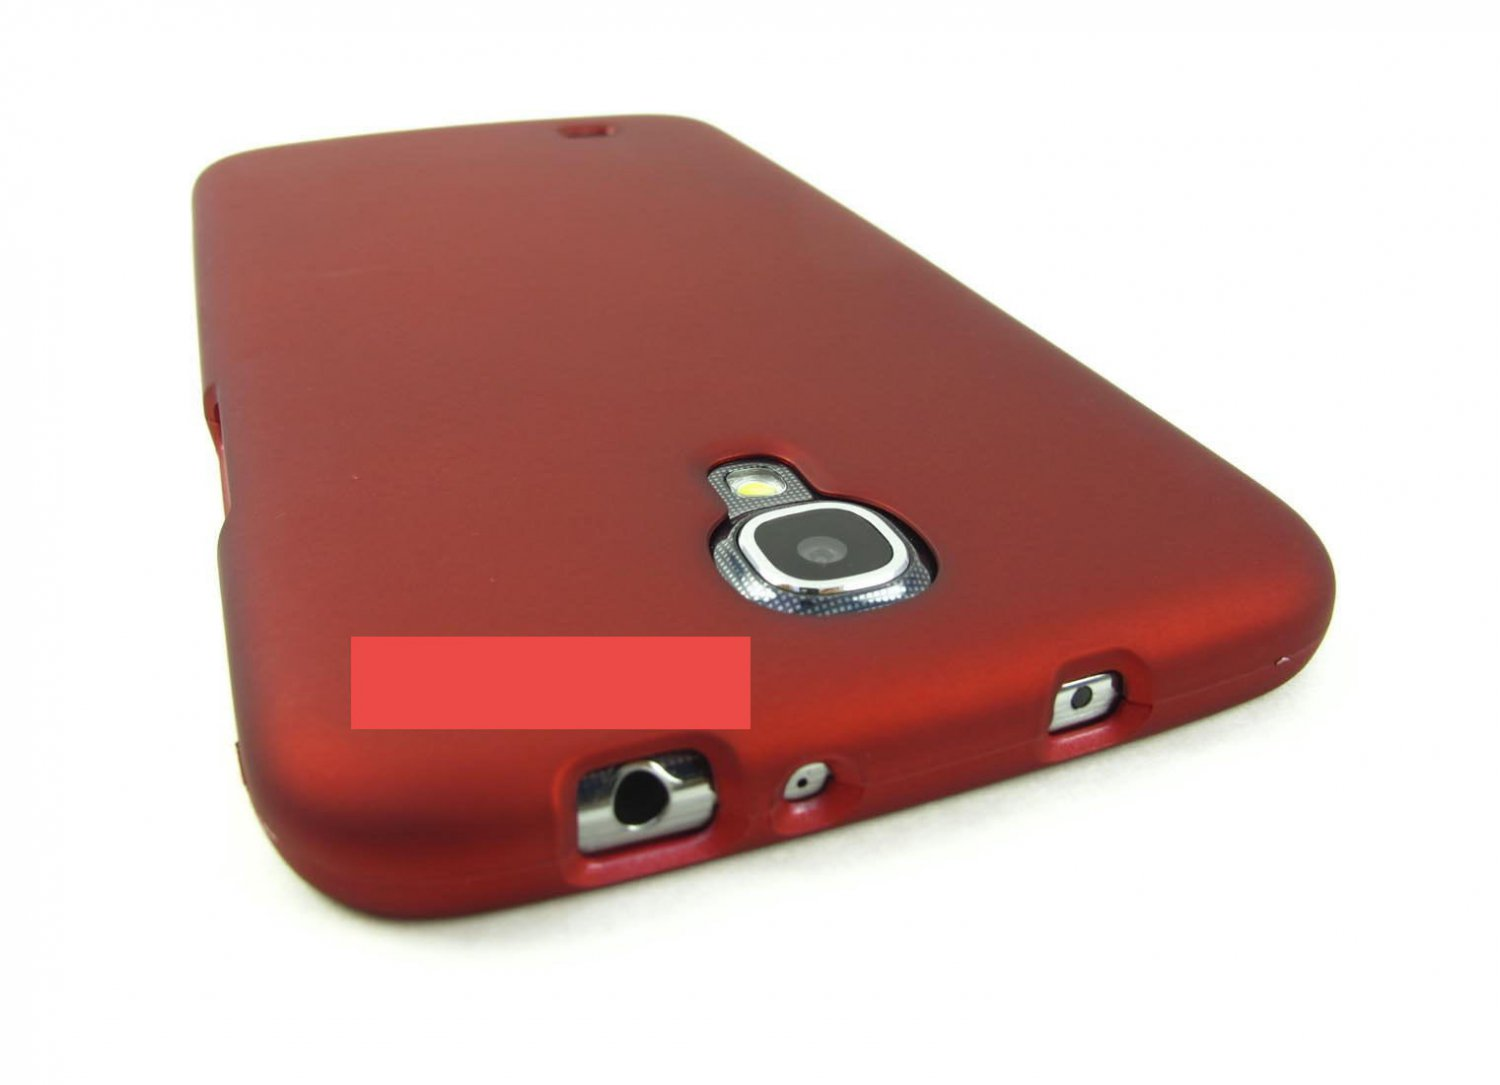 Red Rubberized Hard Case Cover For Samsung Galaxy Mega 6.3 Phone